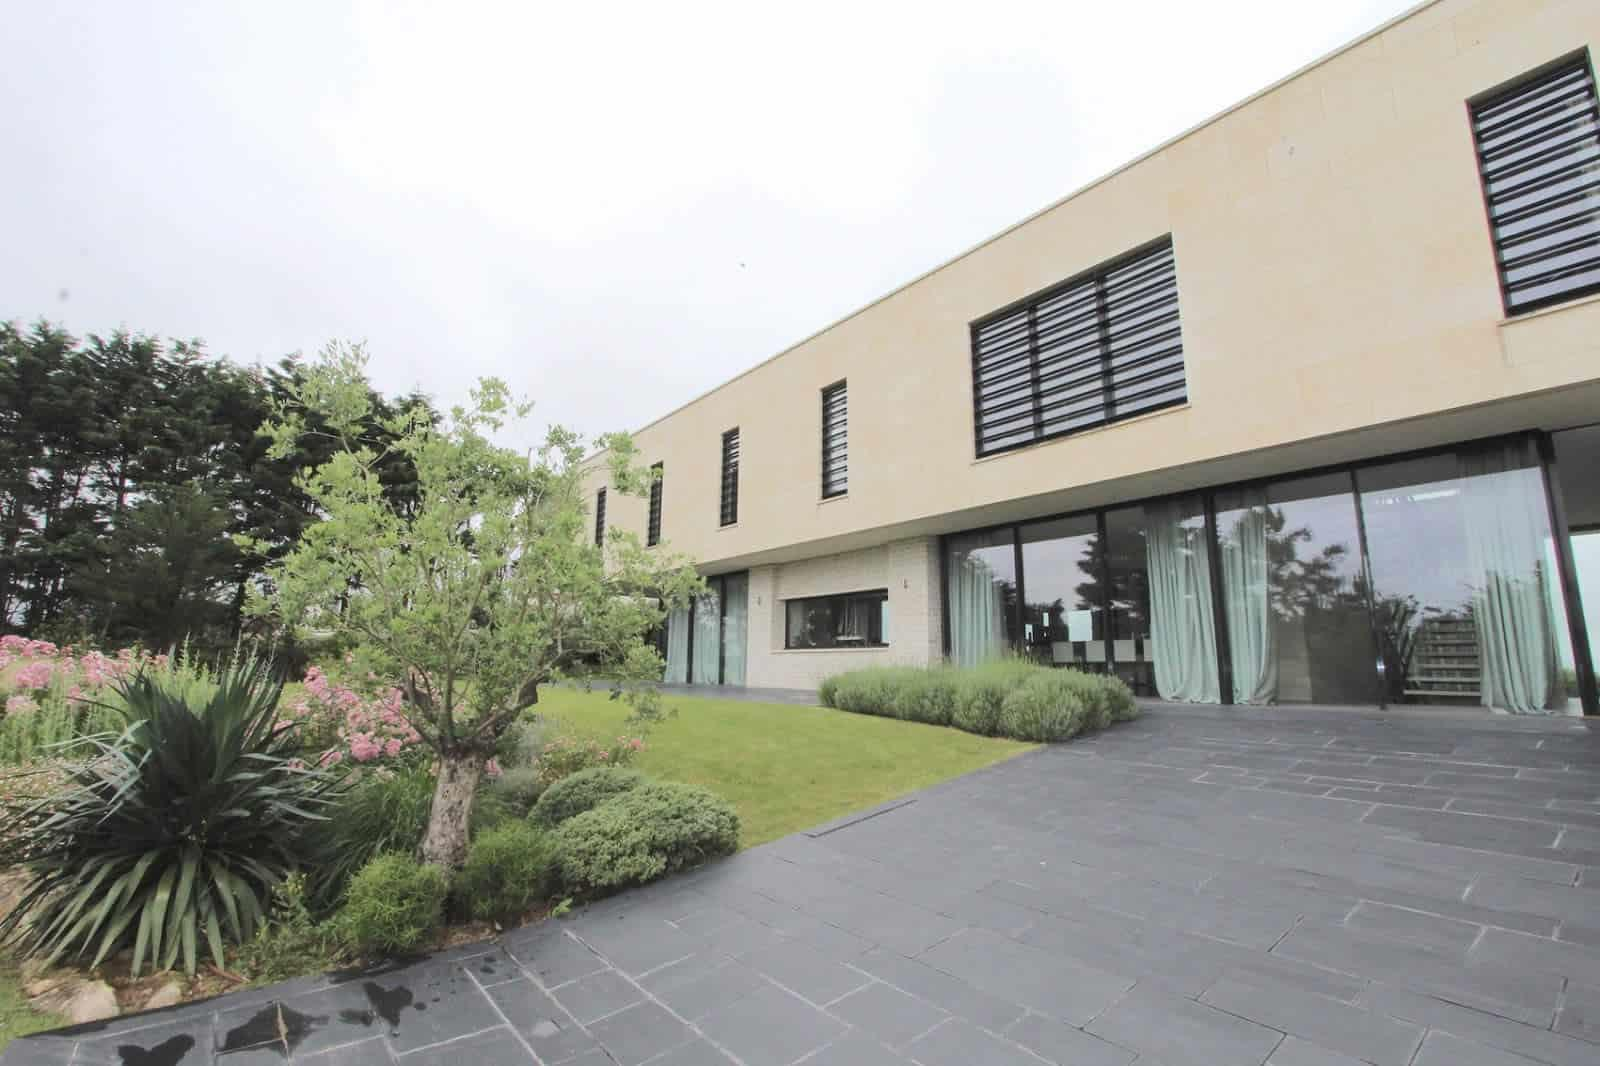 somptueuse-maison-contemporaine-a-louer-cabourg-home-varaville-piscine-cheminee-garage